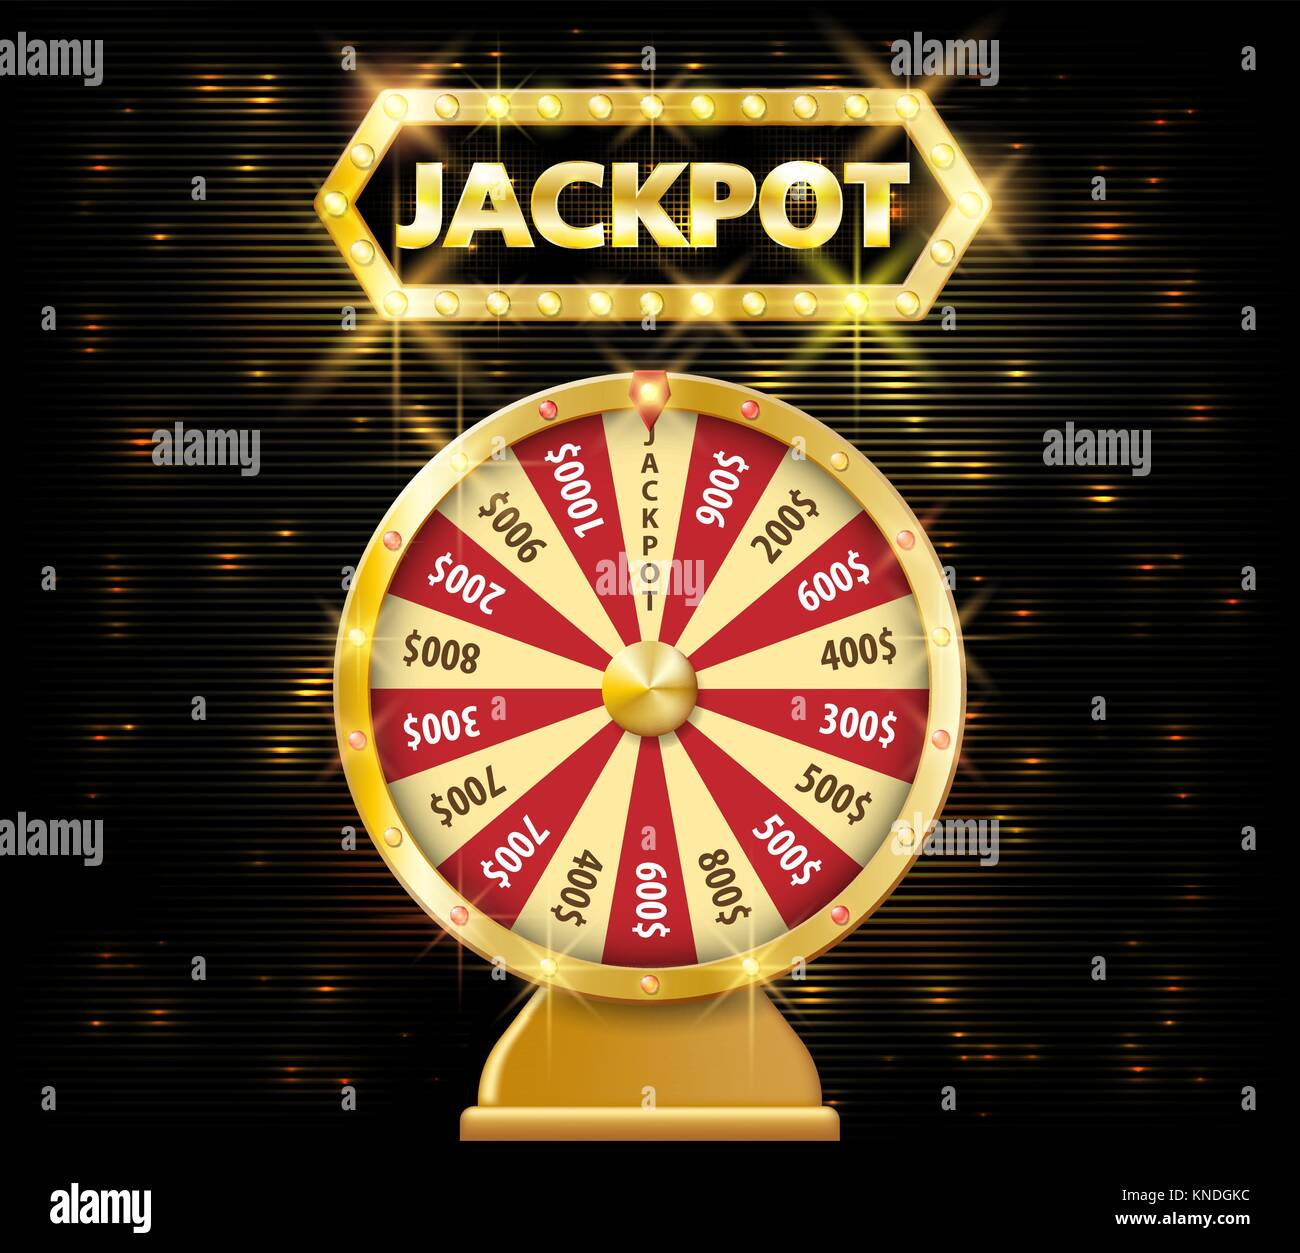 Gold realistic fortune wheel 3d object isolated on dark background with jackpot text. lucky fortune wheel e vector - Stock Vector